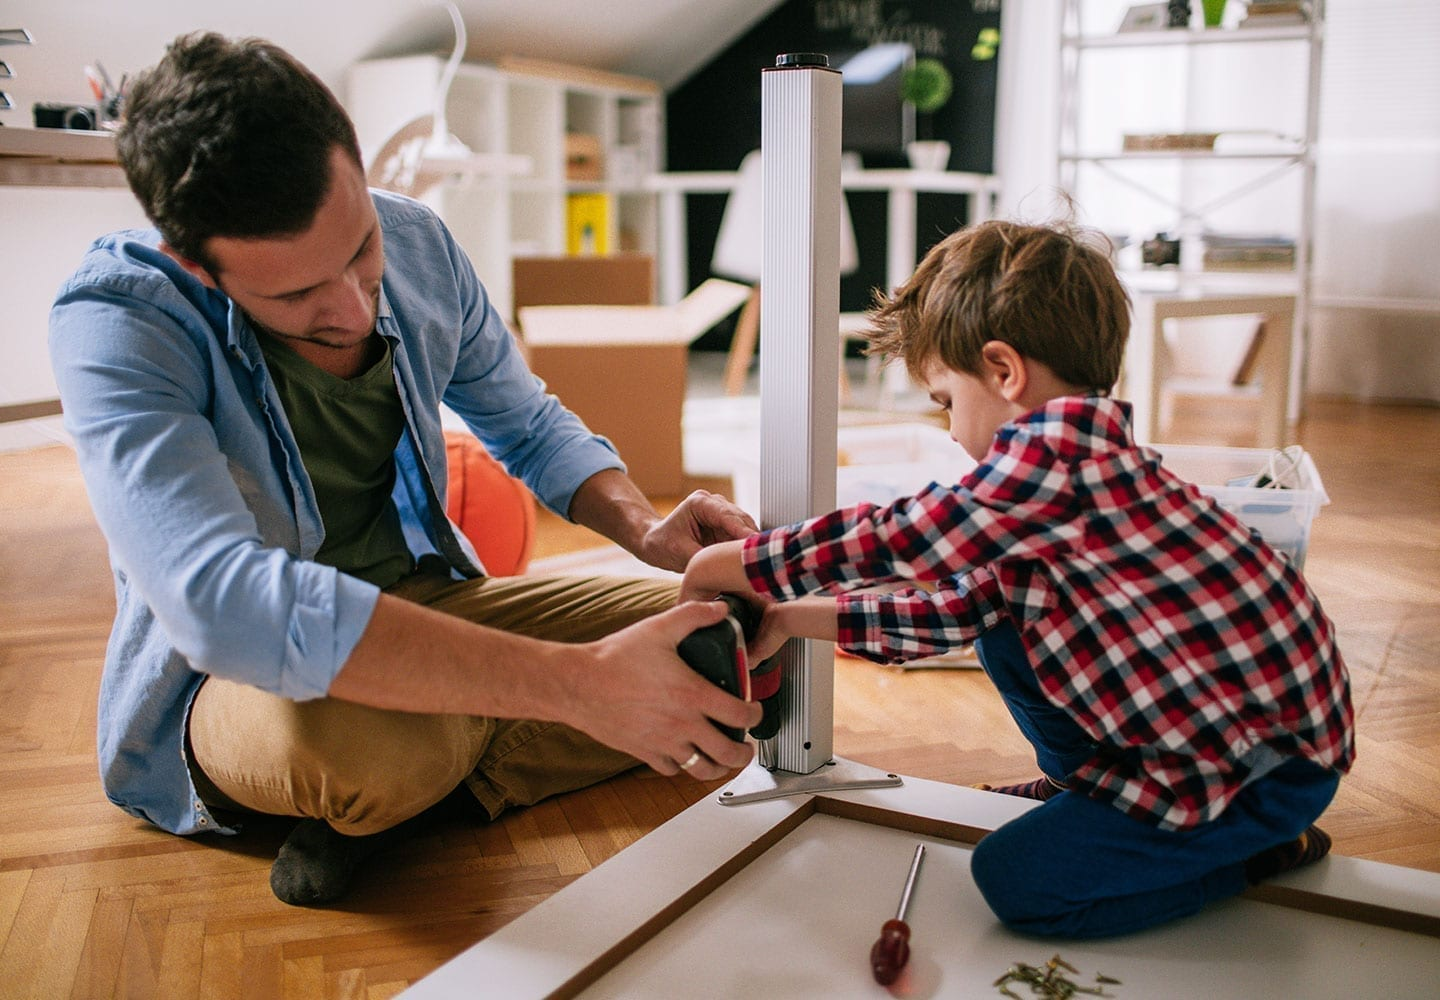 7 Diy Home Improvement Projects For Beginners Containing The Chaos